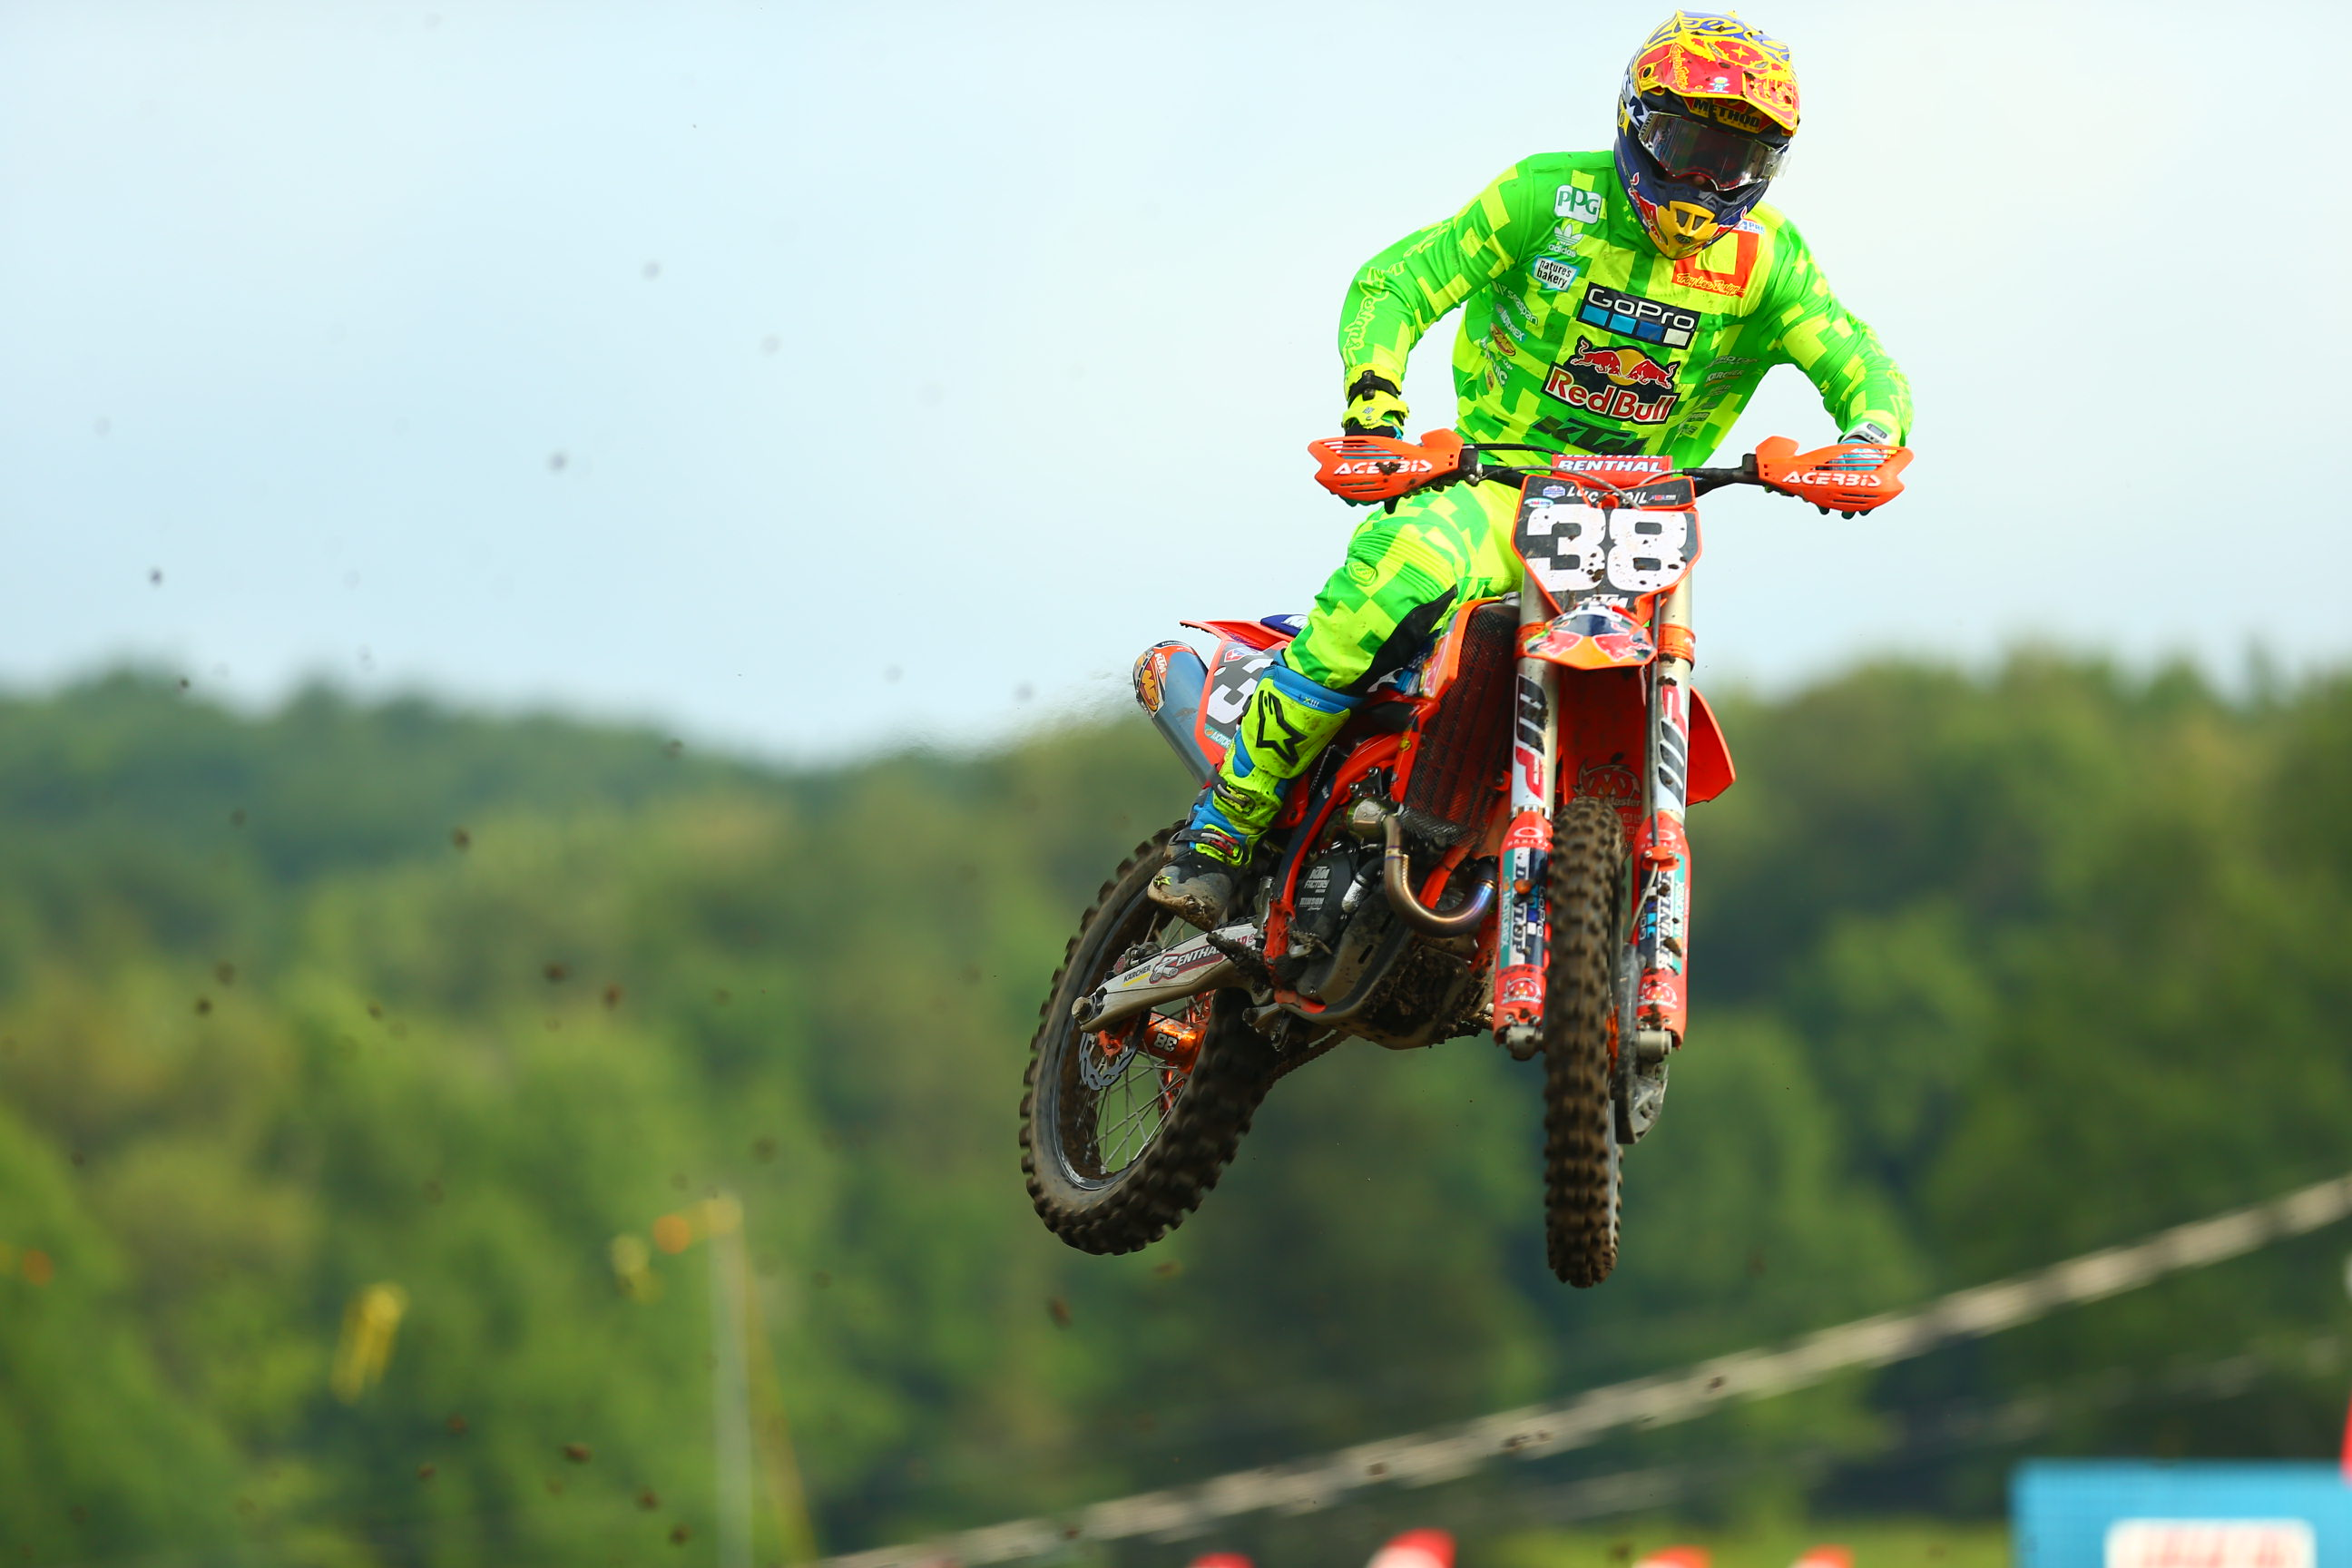 Troy Lee Designs/Red Bull/KTM McElrath and Cantrell Endure Muddy Conditions at Unadilla